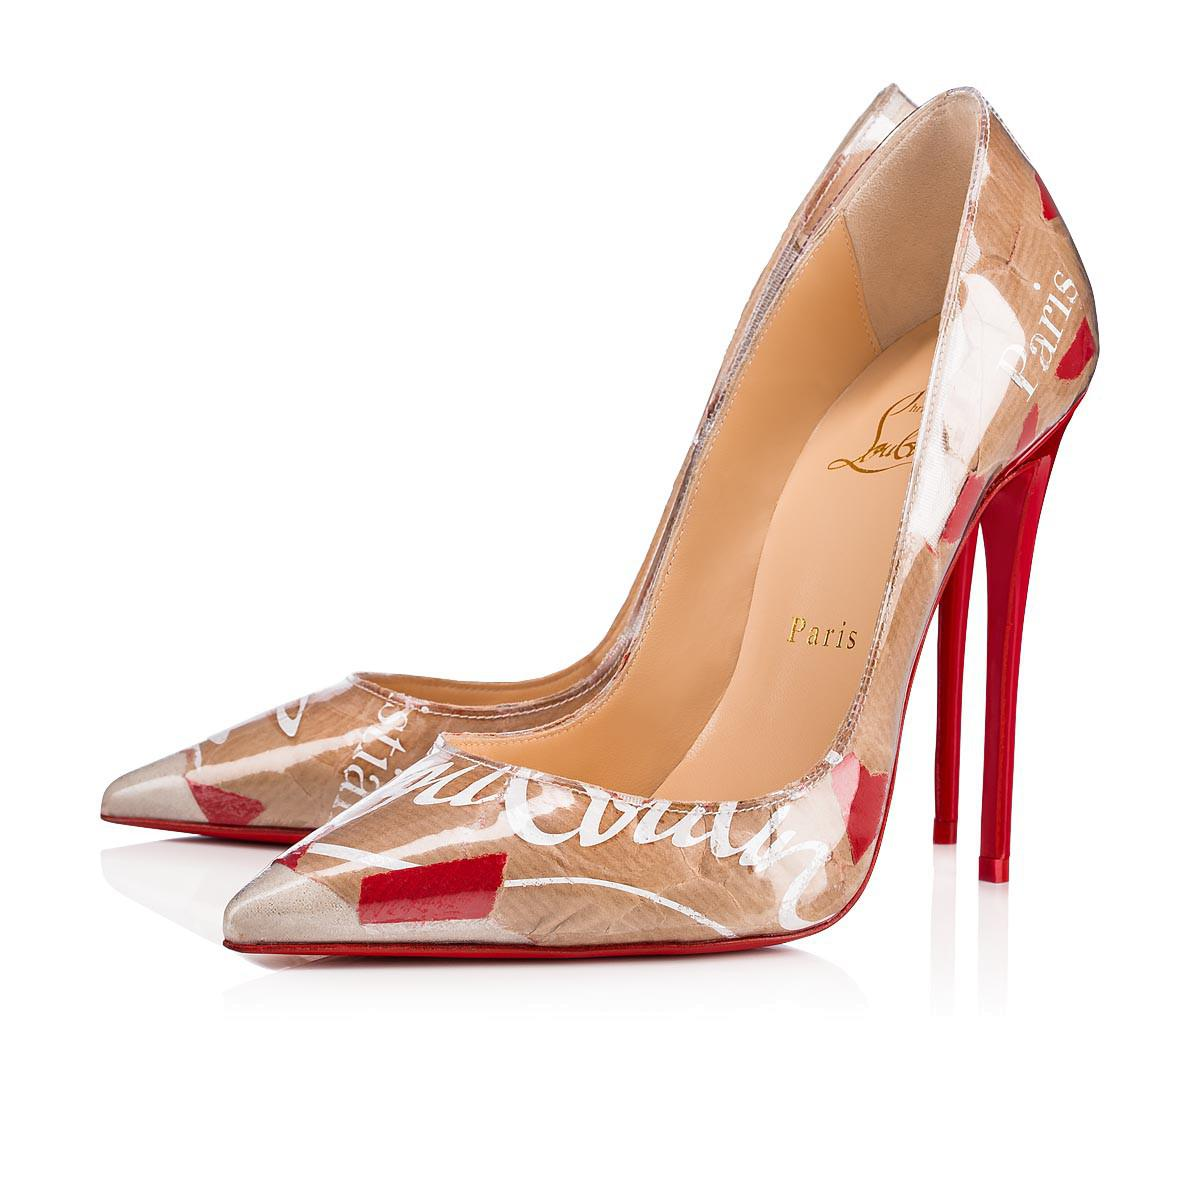 Christian Louboutin So Kate 120 mm - Shoes Post